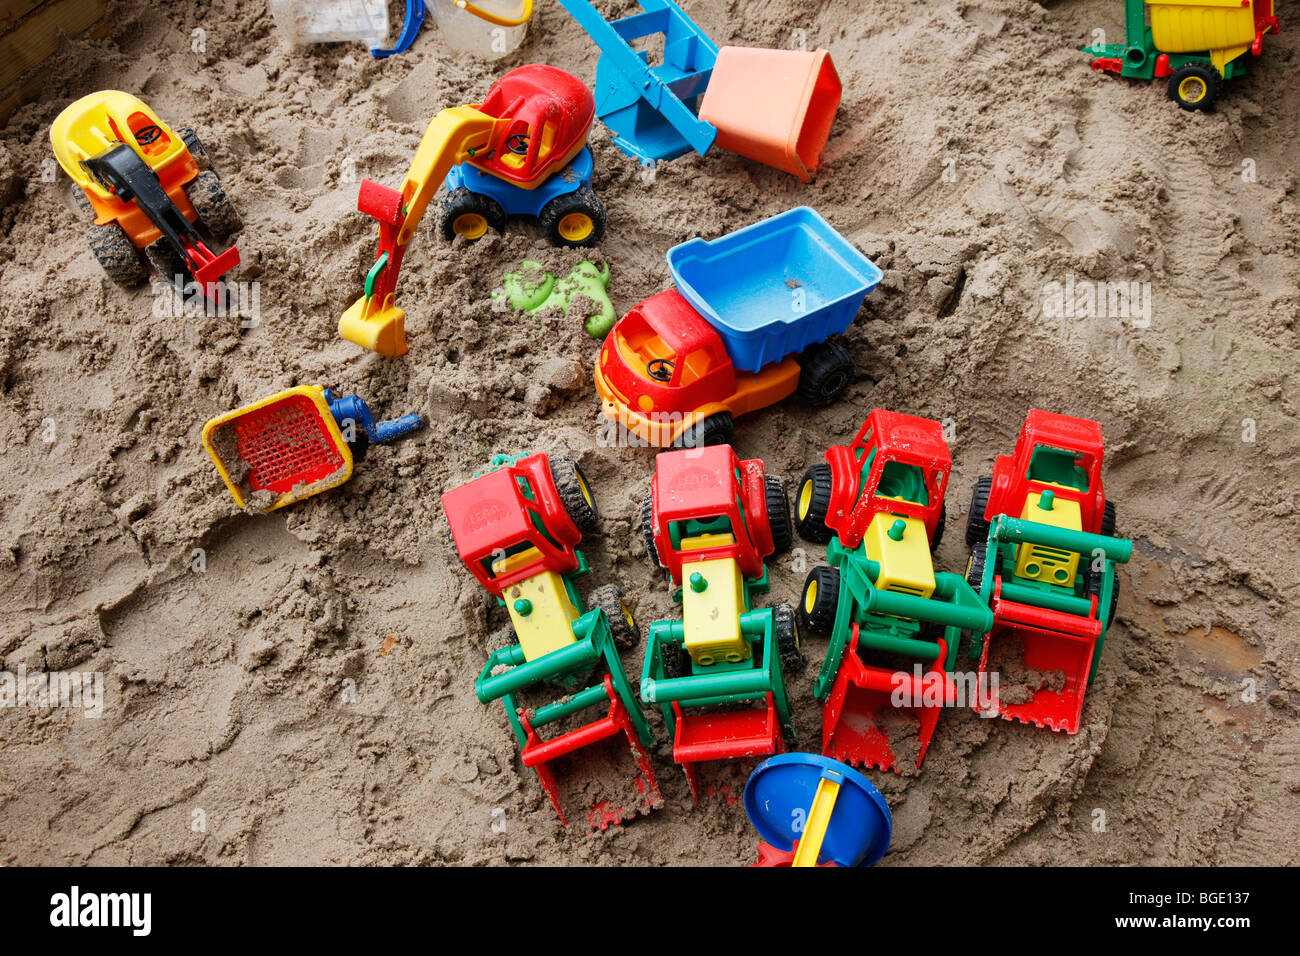 child's toys in a sandbox, outside. - Stock Image